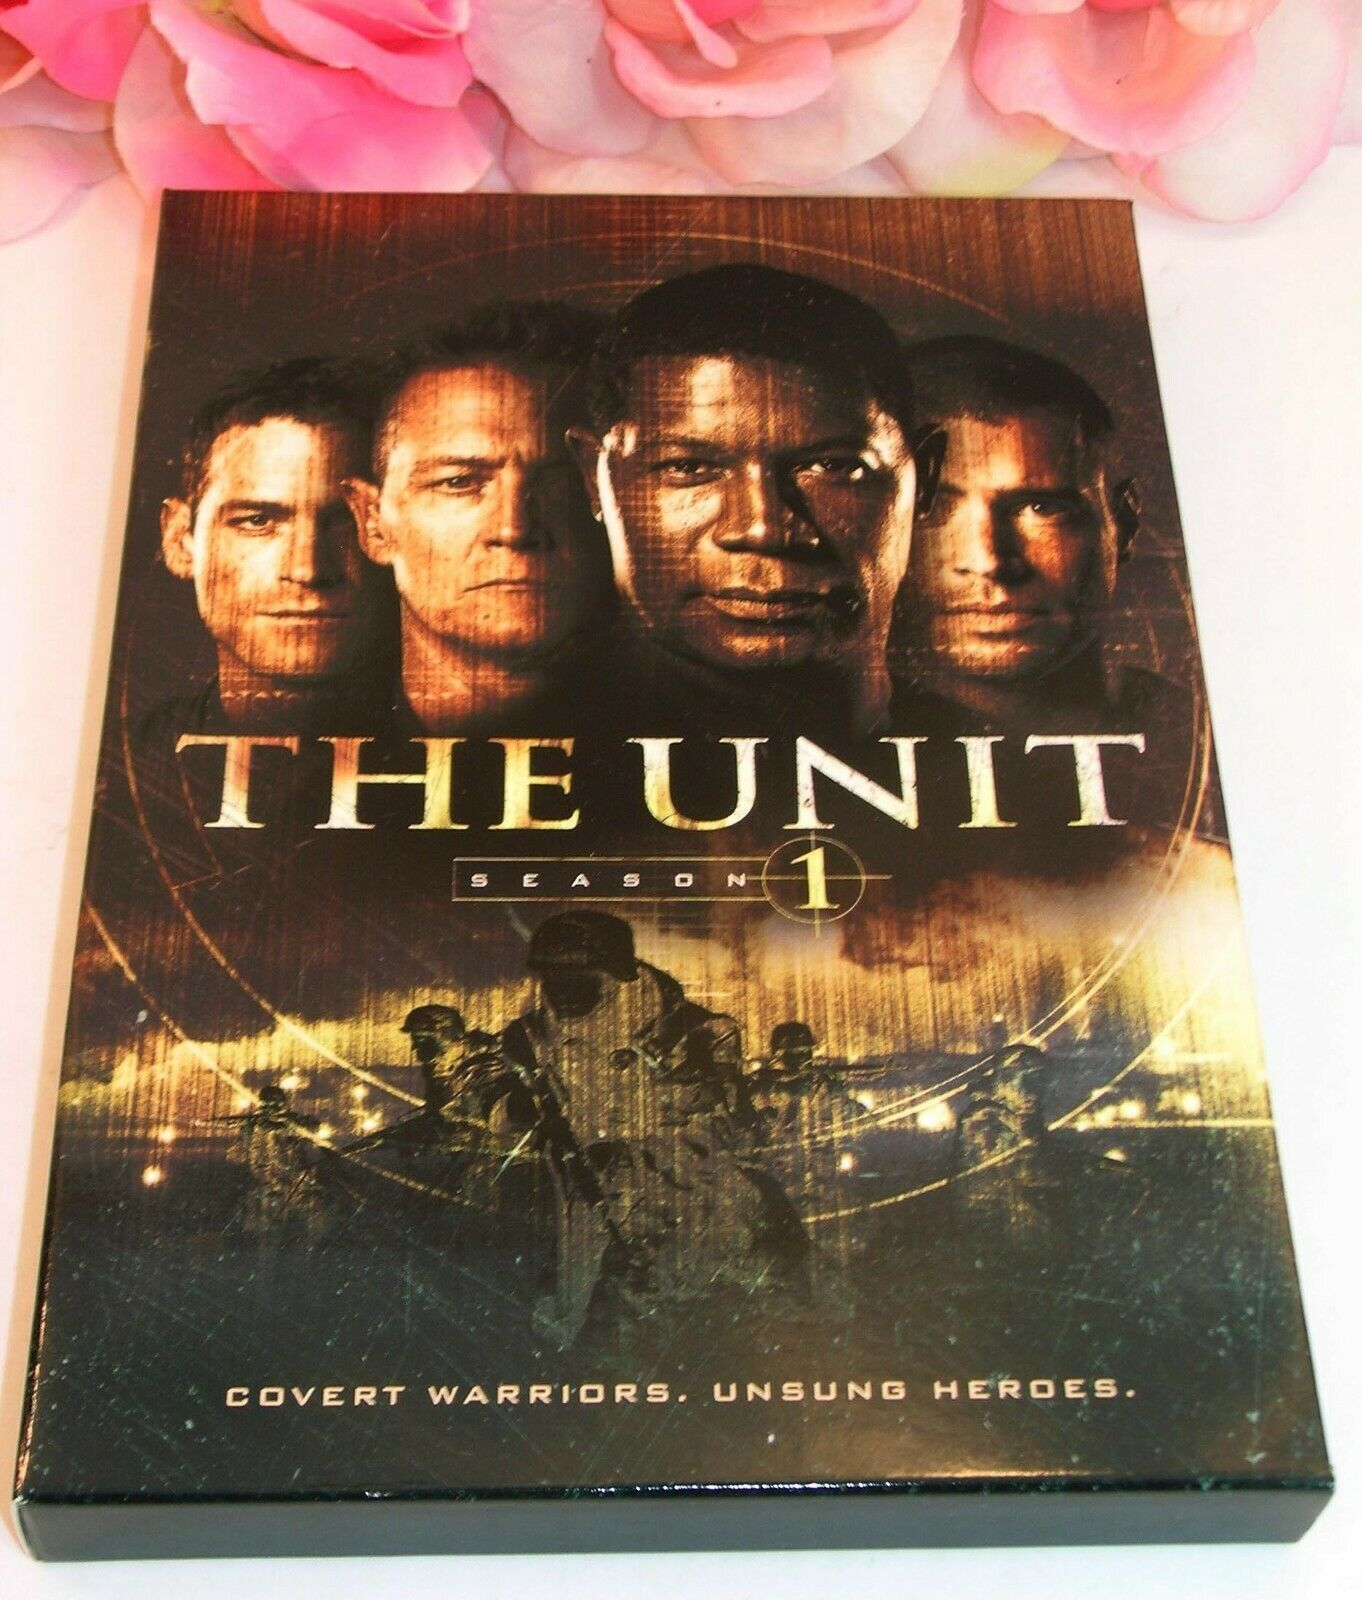 Primary image for DVD's The Unit Season One (1) Full Season 13 Episodes on 4 Disc Set Gently Used